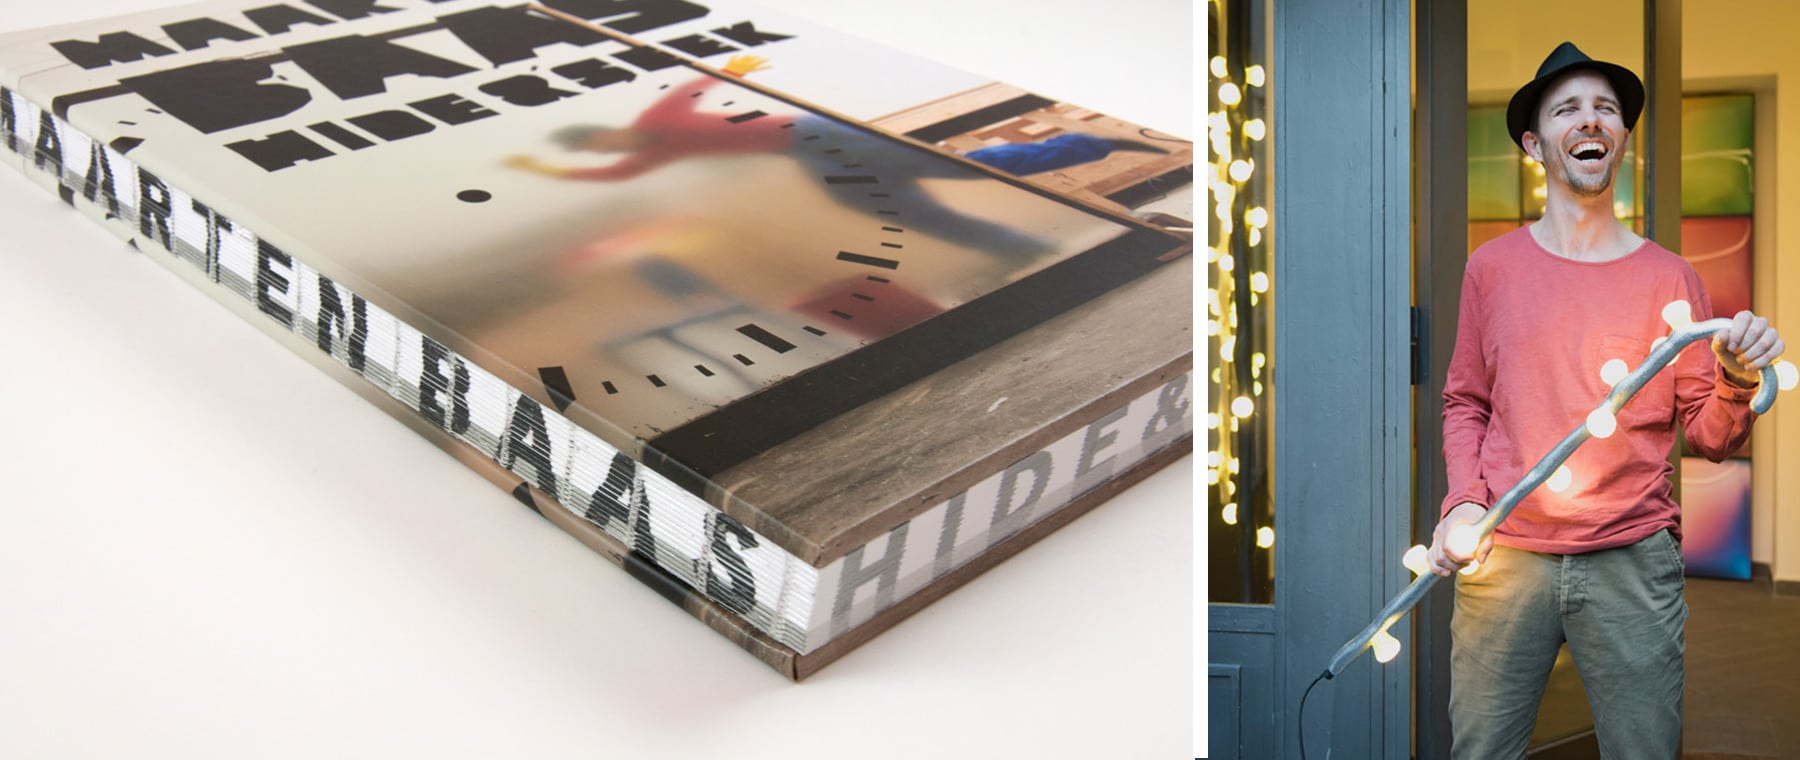 Left: Much celebrated in his native Netherlands, Maarten Baas was recently given a major retrospective show at the Groninger Museum, which produced a coffee-table book about his design; right, a portrait of the designer